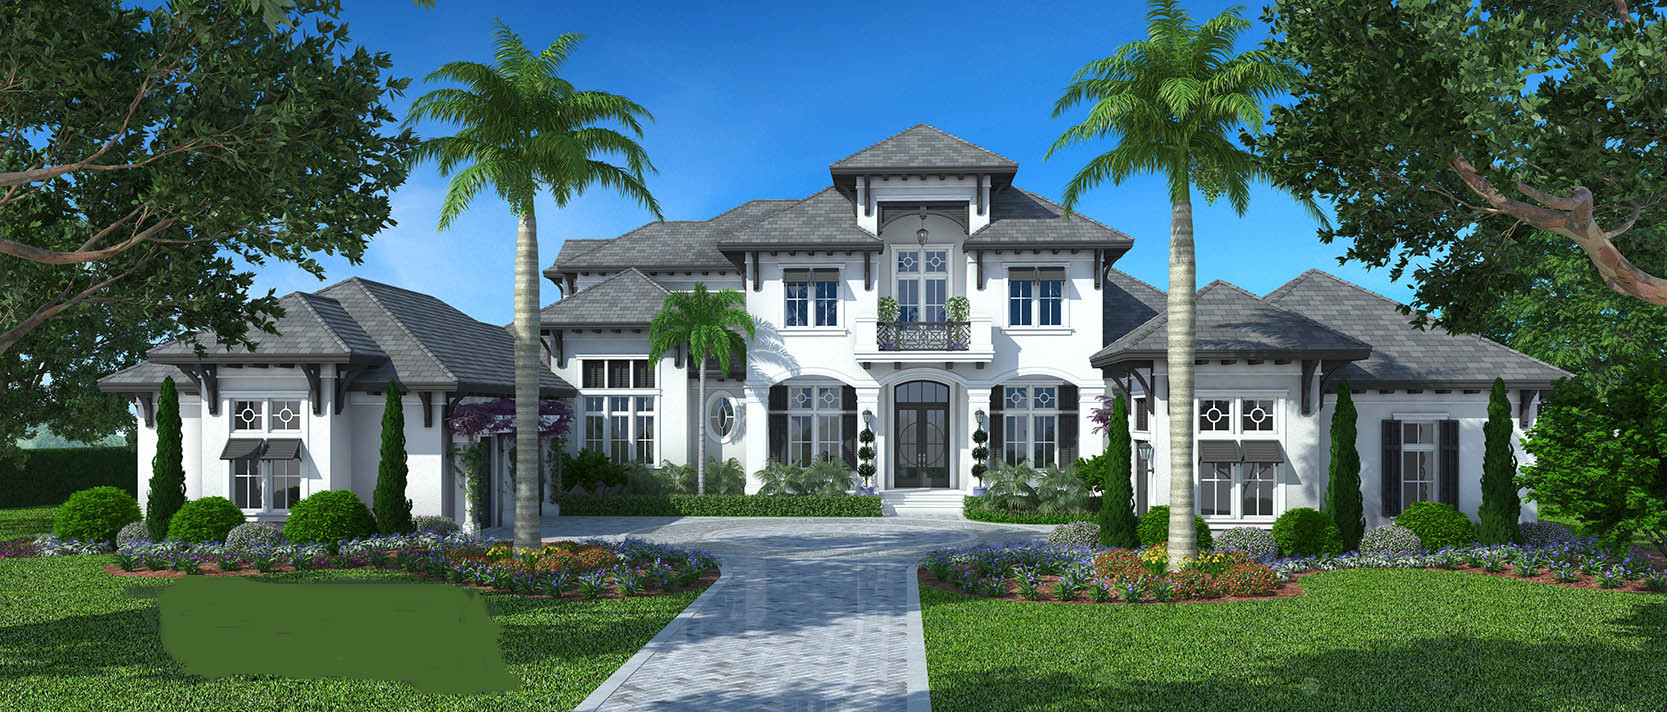 Luxury House Plan 175 1094 4 Bedrm 6200 Sq Ft Home